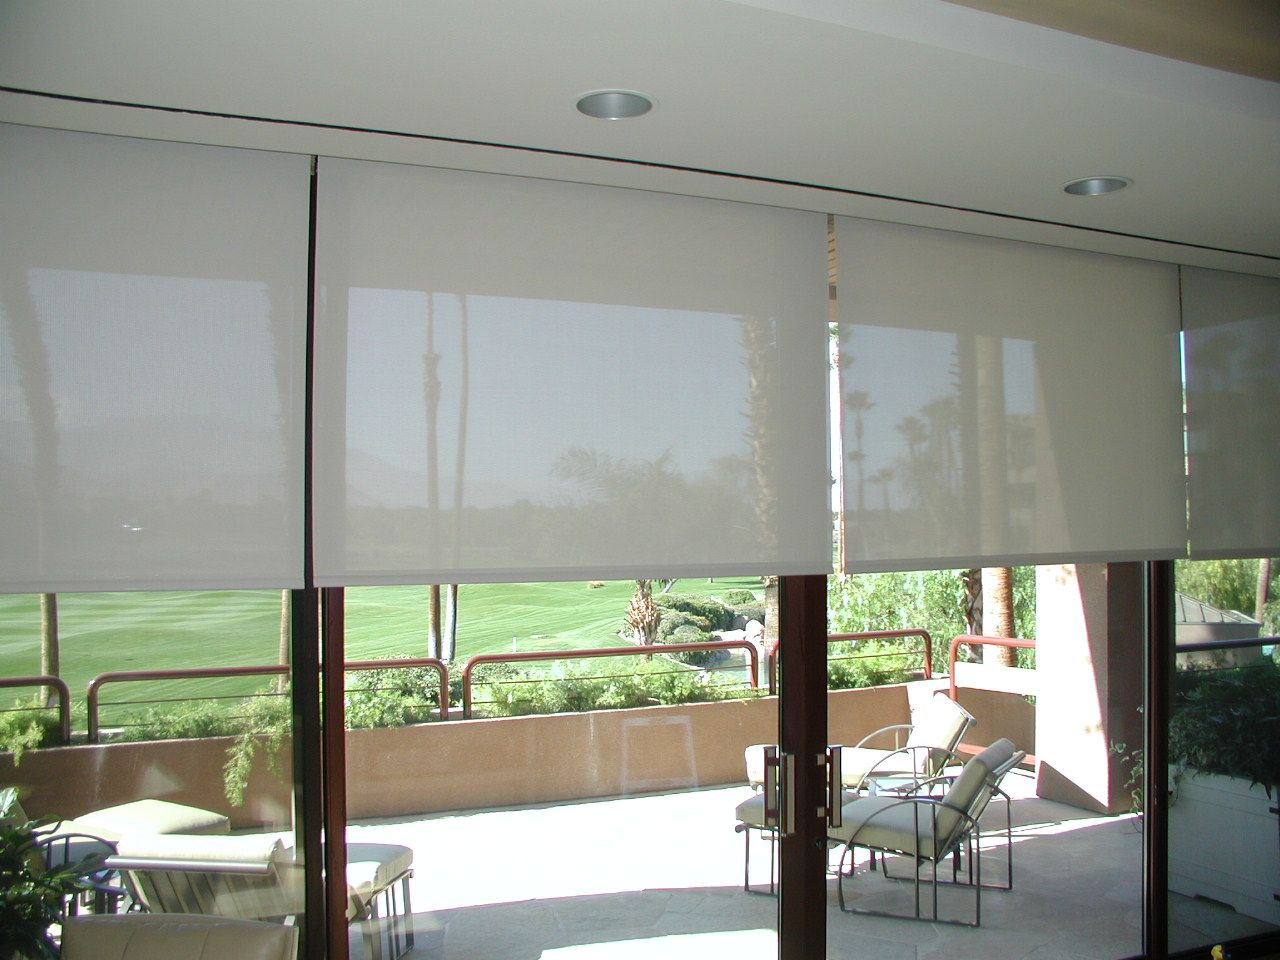 Outside Mount Roman Shade Double Window